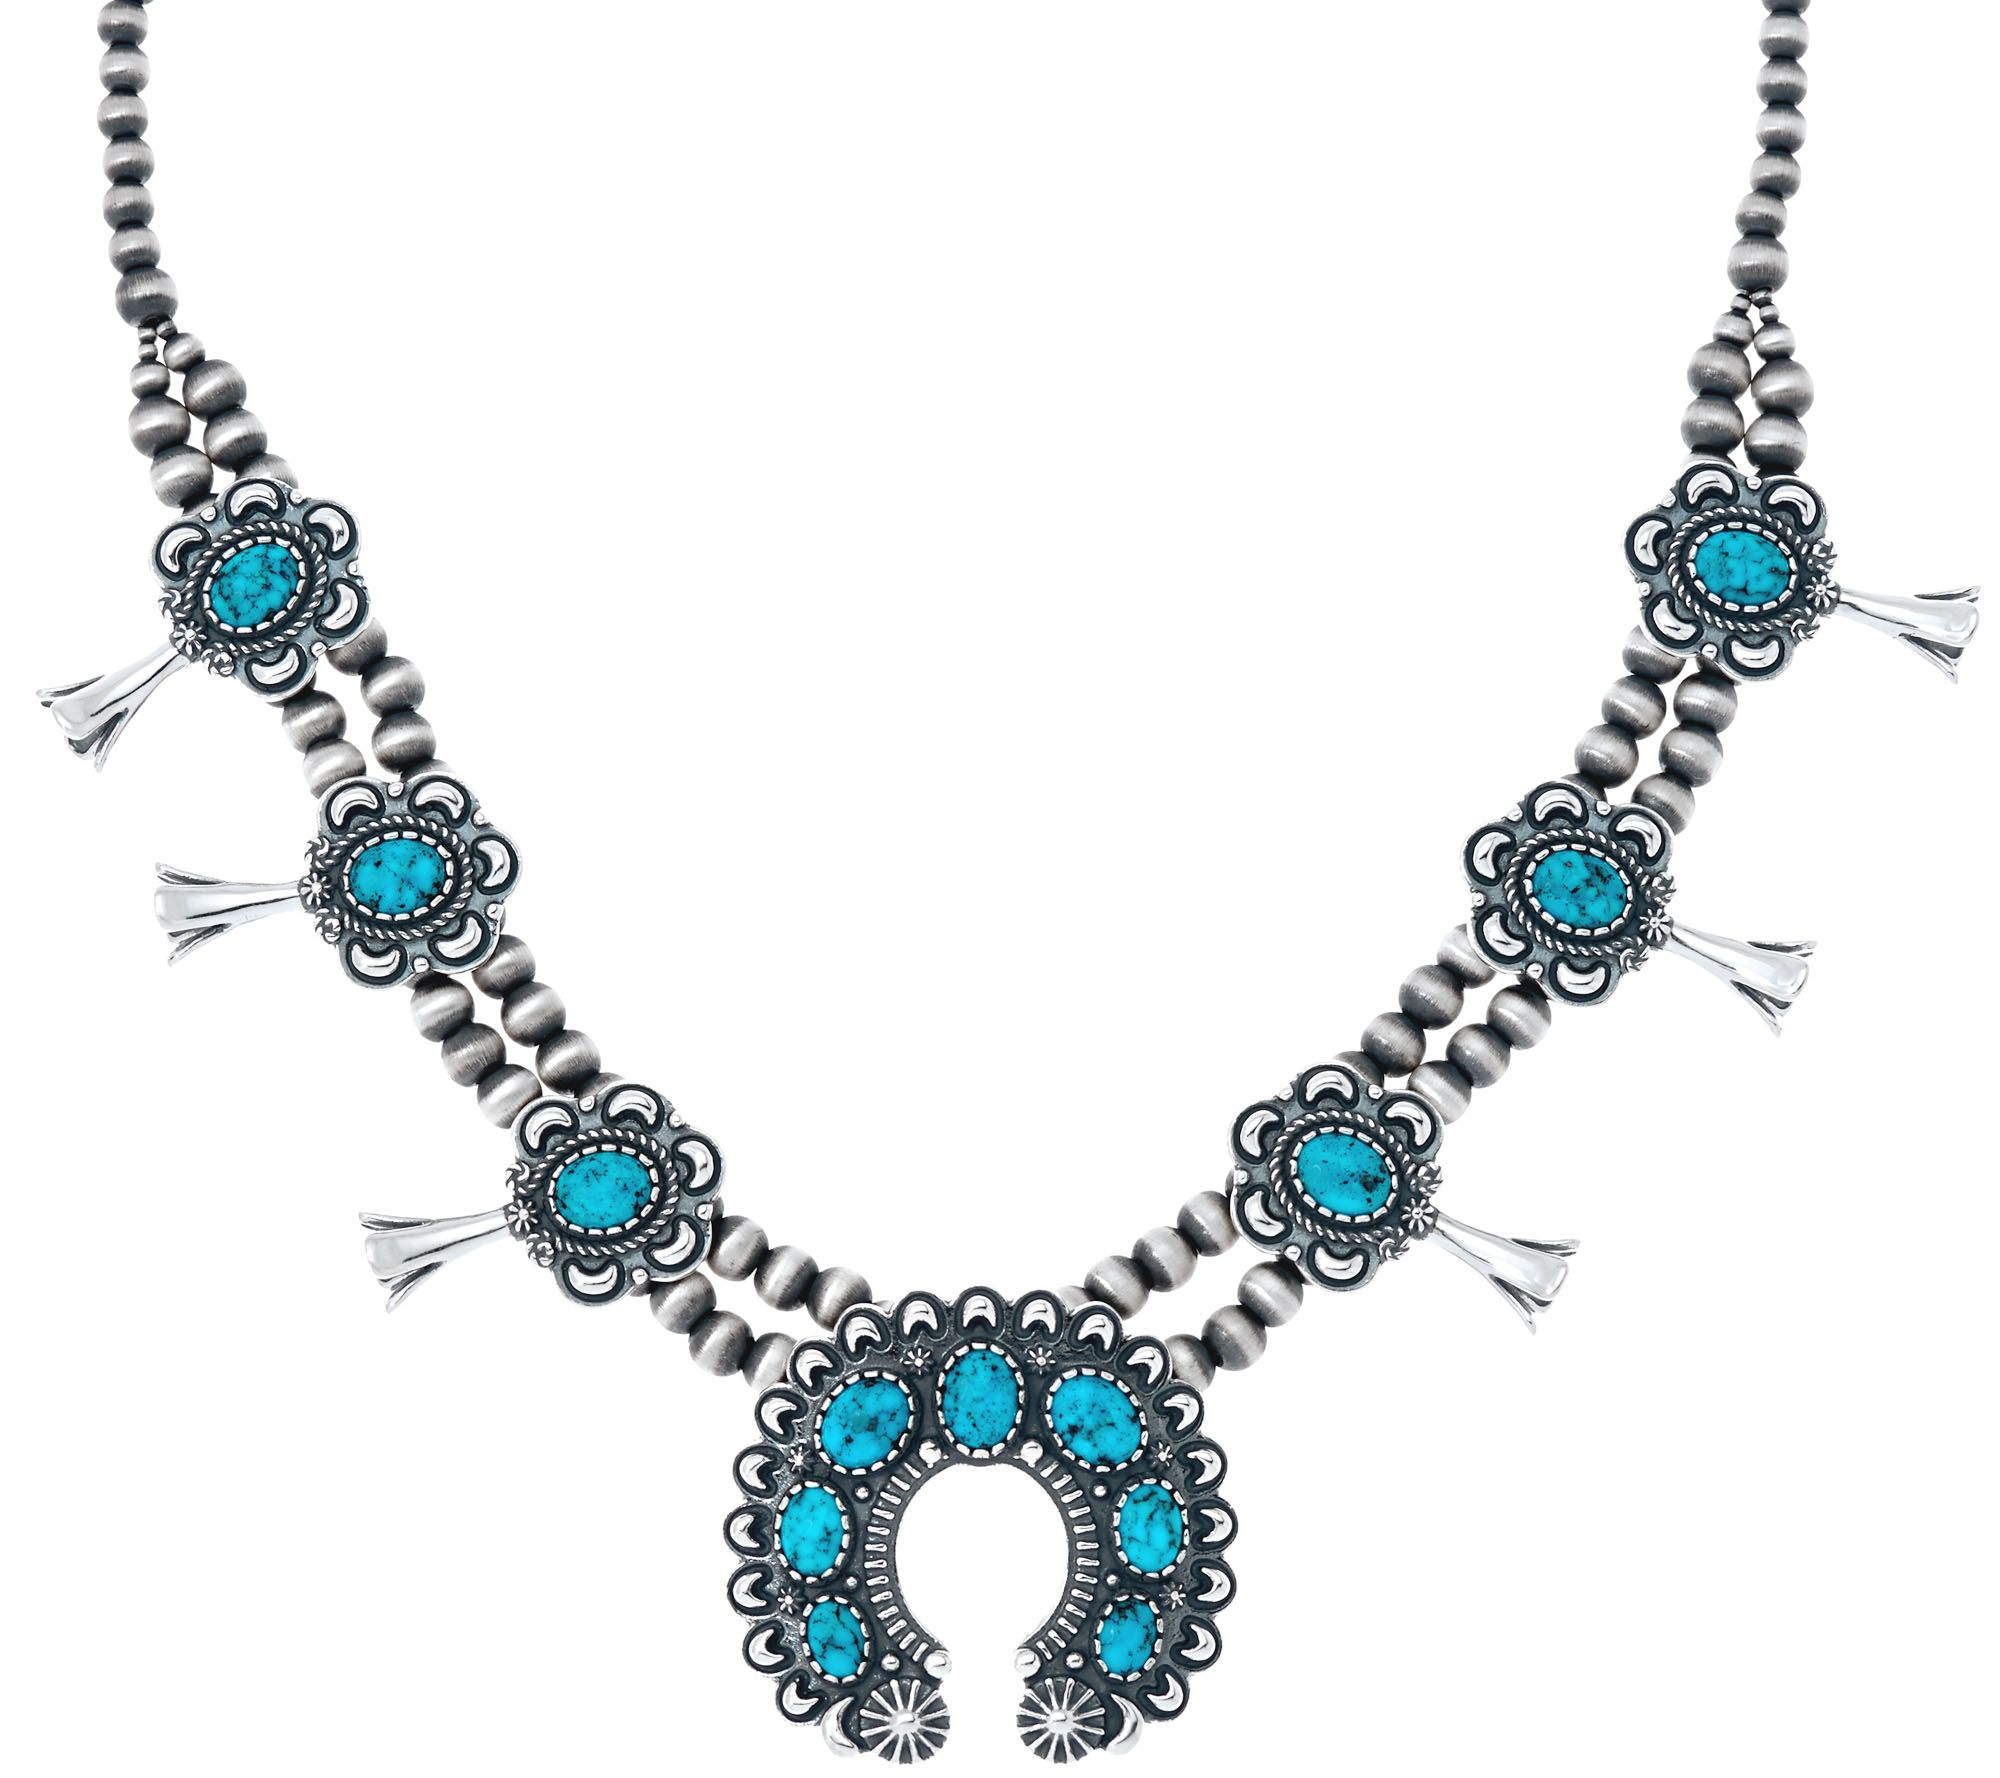 madagascar format shop a silver to notice jewellery turquoise coral necklace galapagos and with